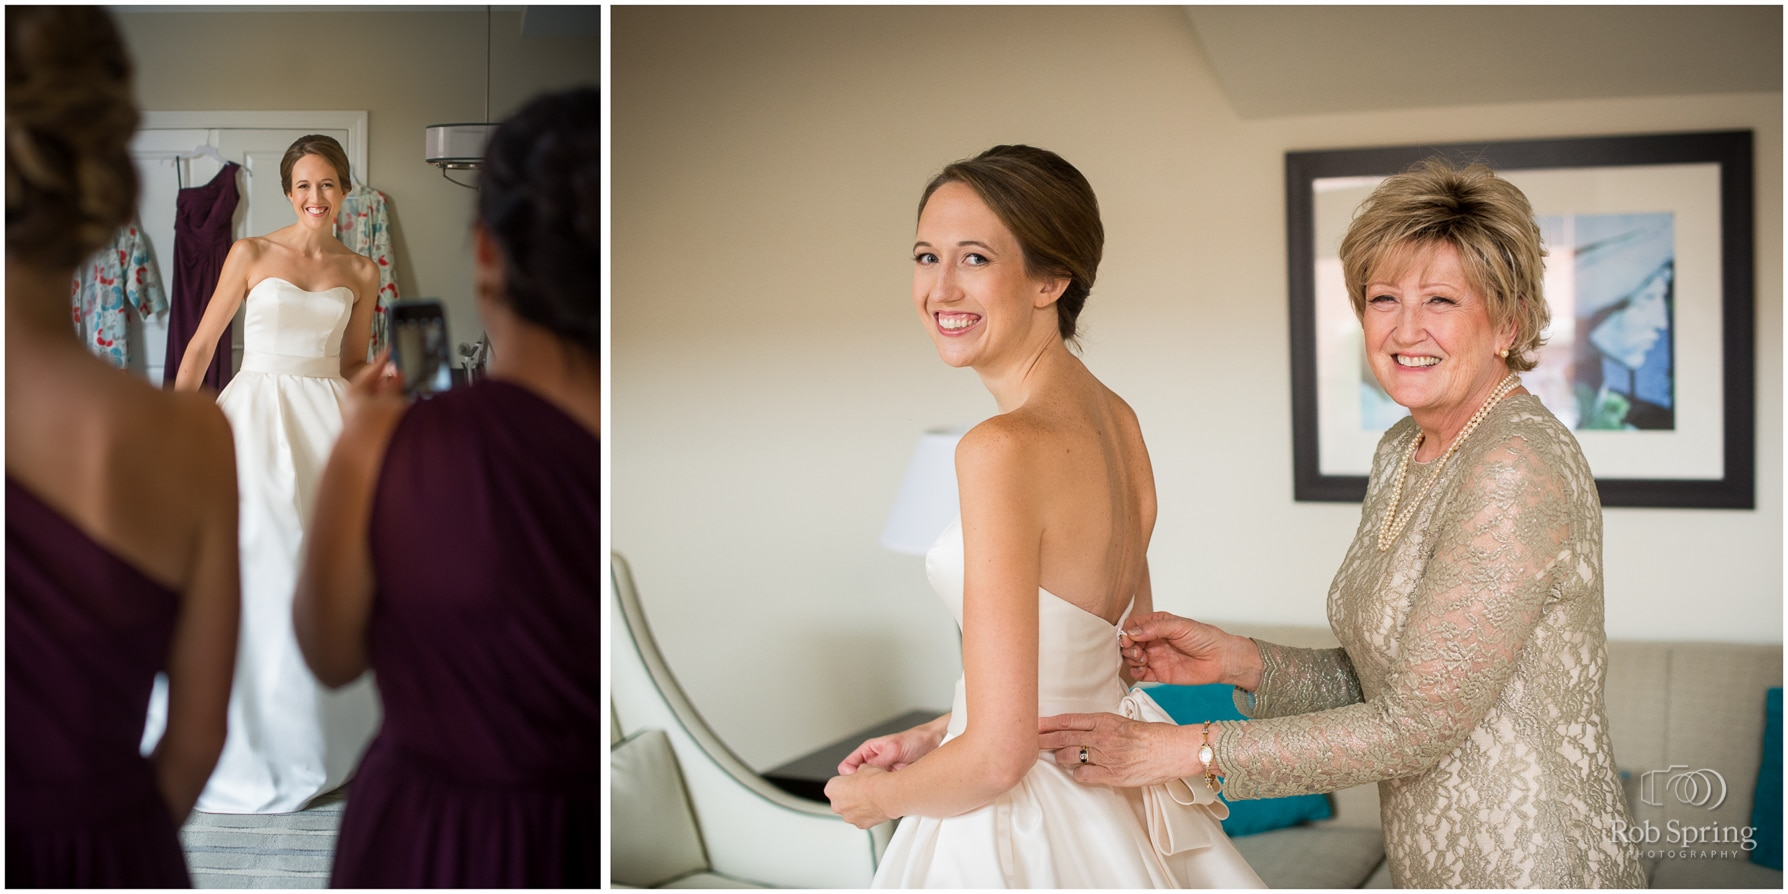 Bride getting ready at Pavilion Grand Hotel, Saratoga Springs, NY wedding photographer | Canfield Casino wedding